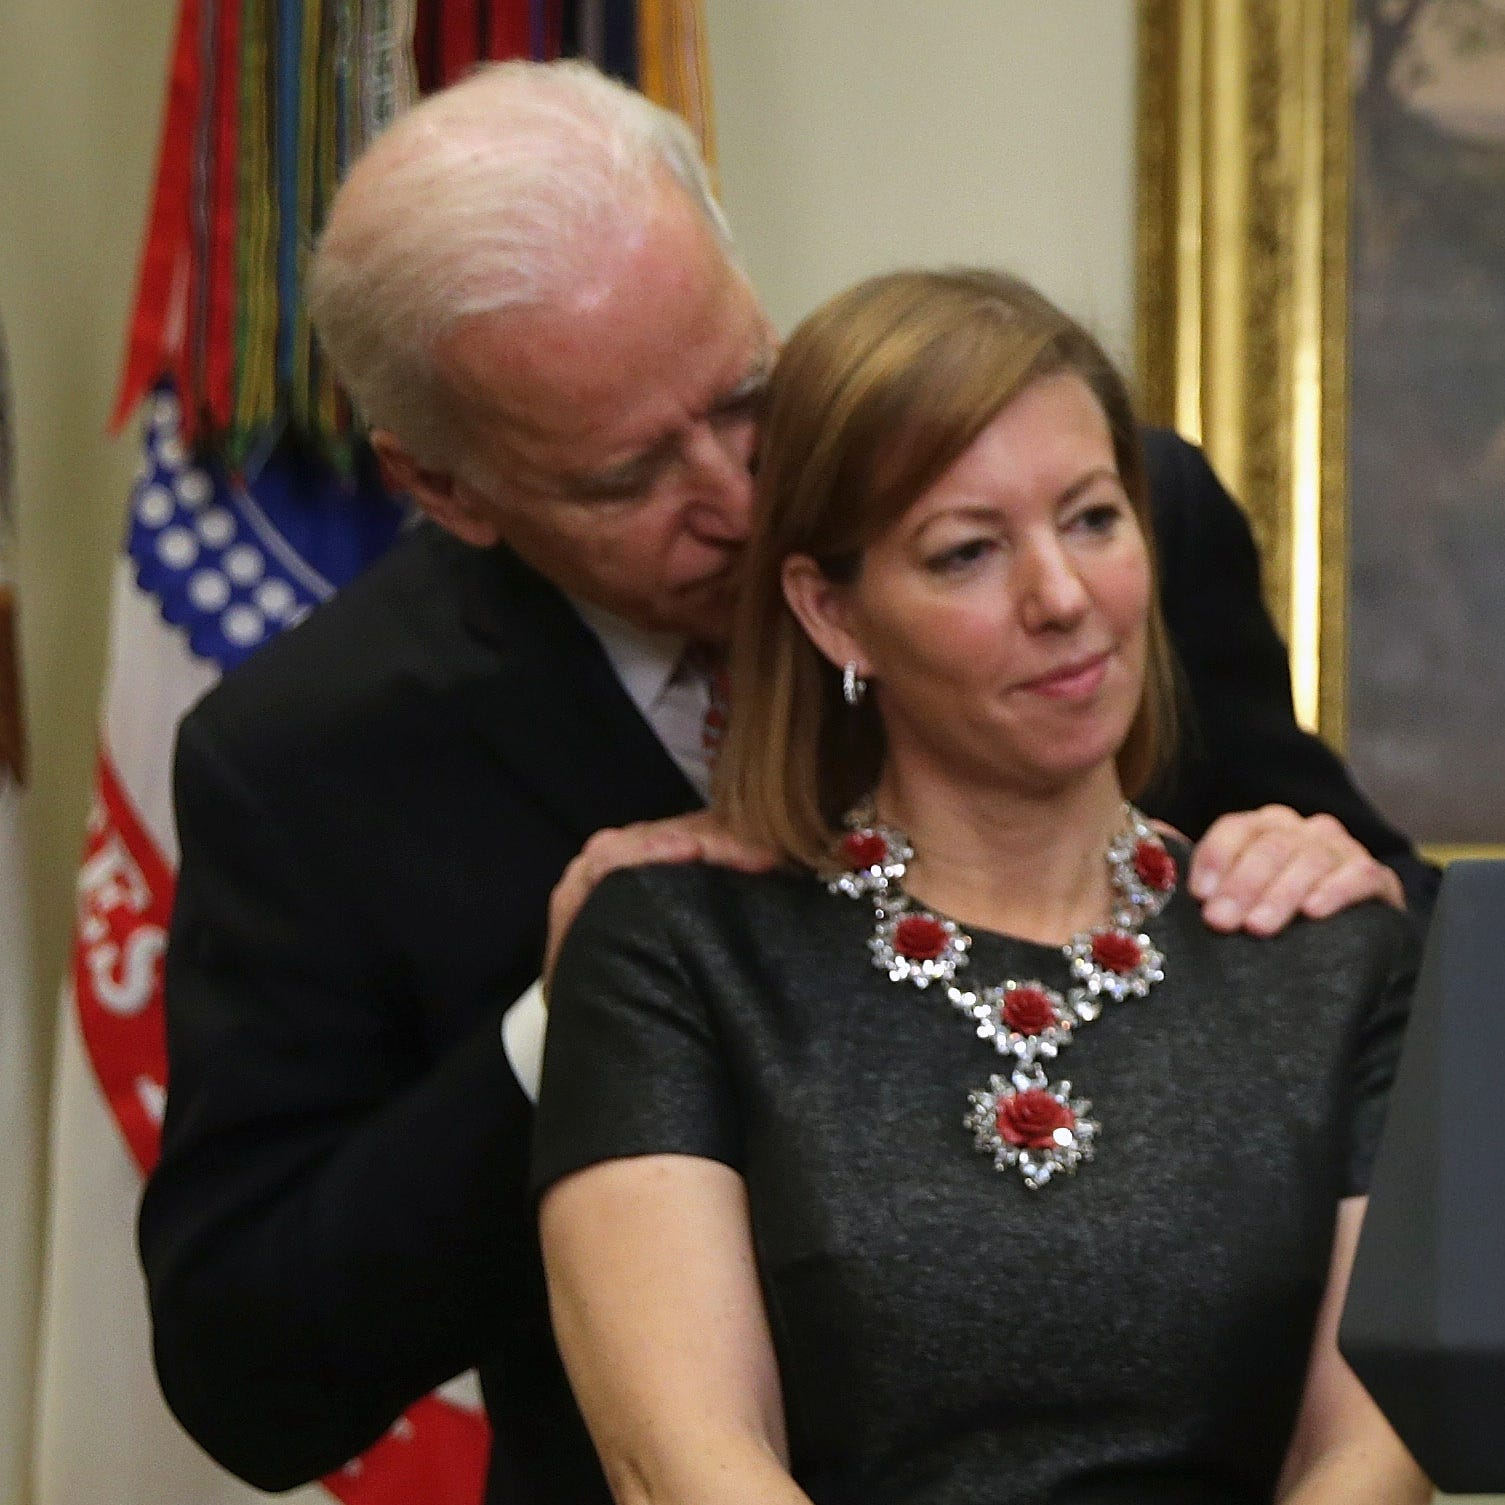 Wife of ex-Defense secretary defends Biden, says viral photo used 'misleadingly'